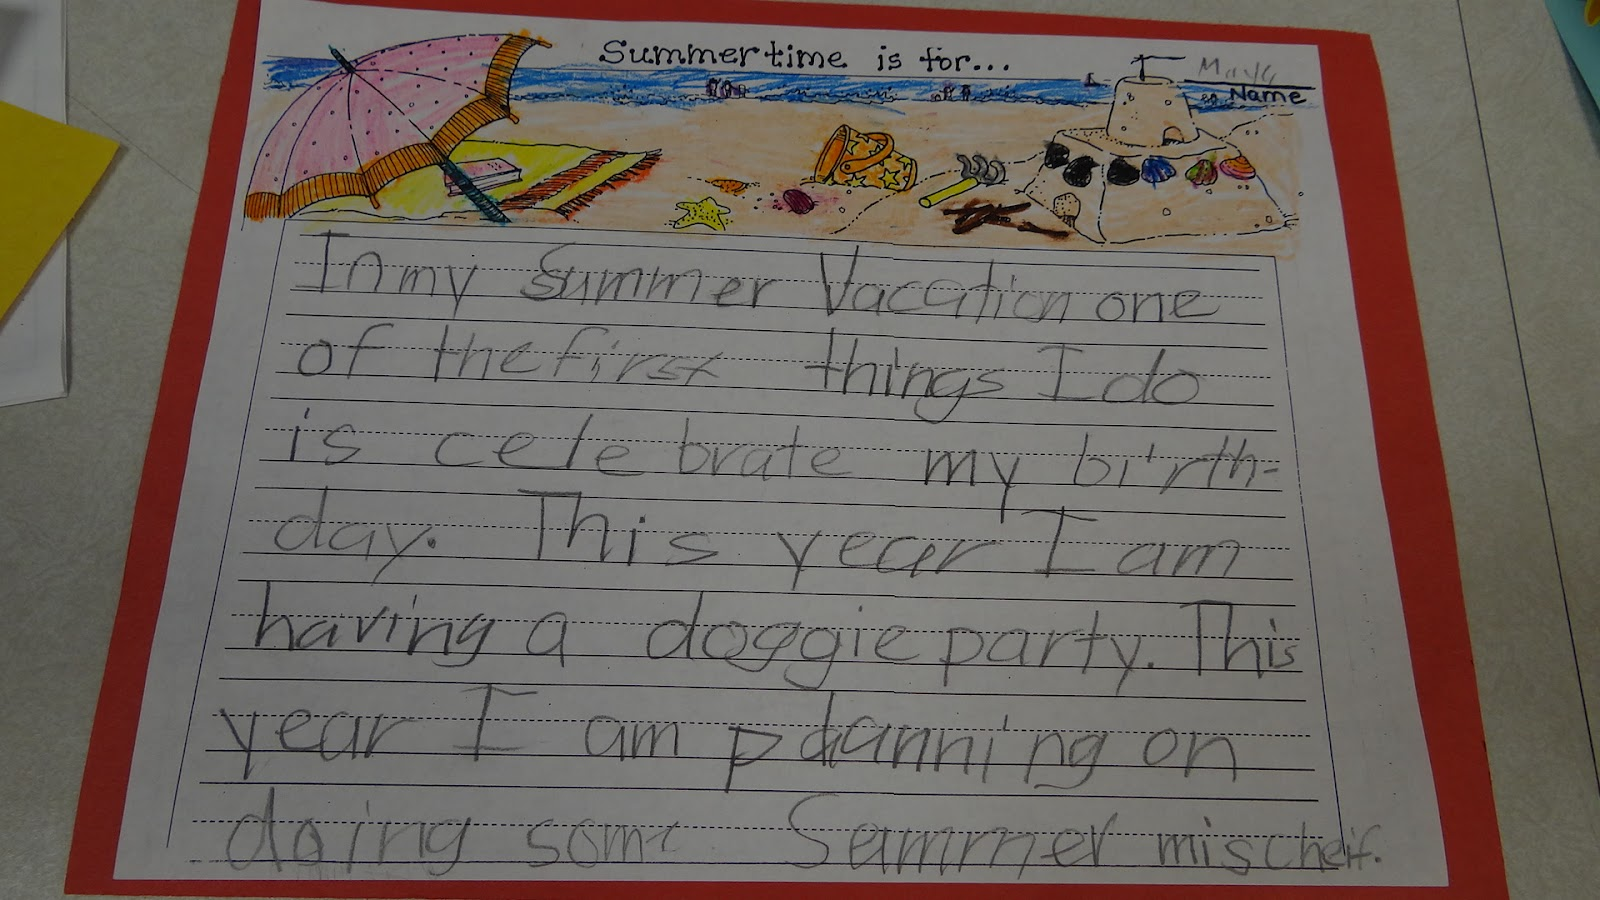 patties classroom  we a few stories about summer and summer vacations to get some ideas